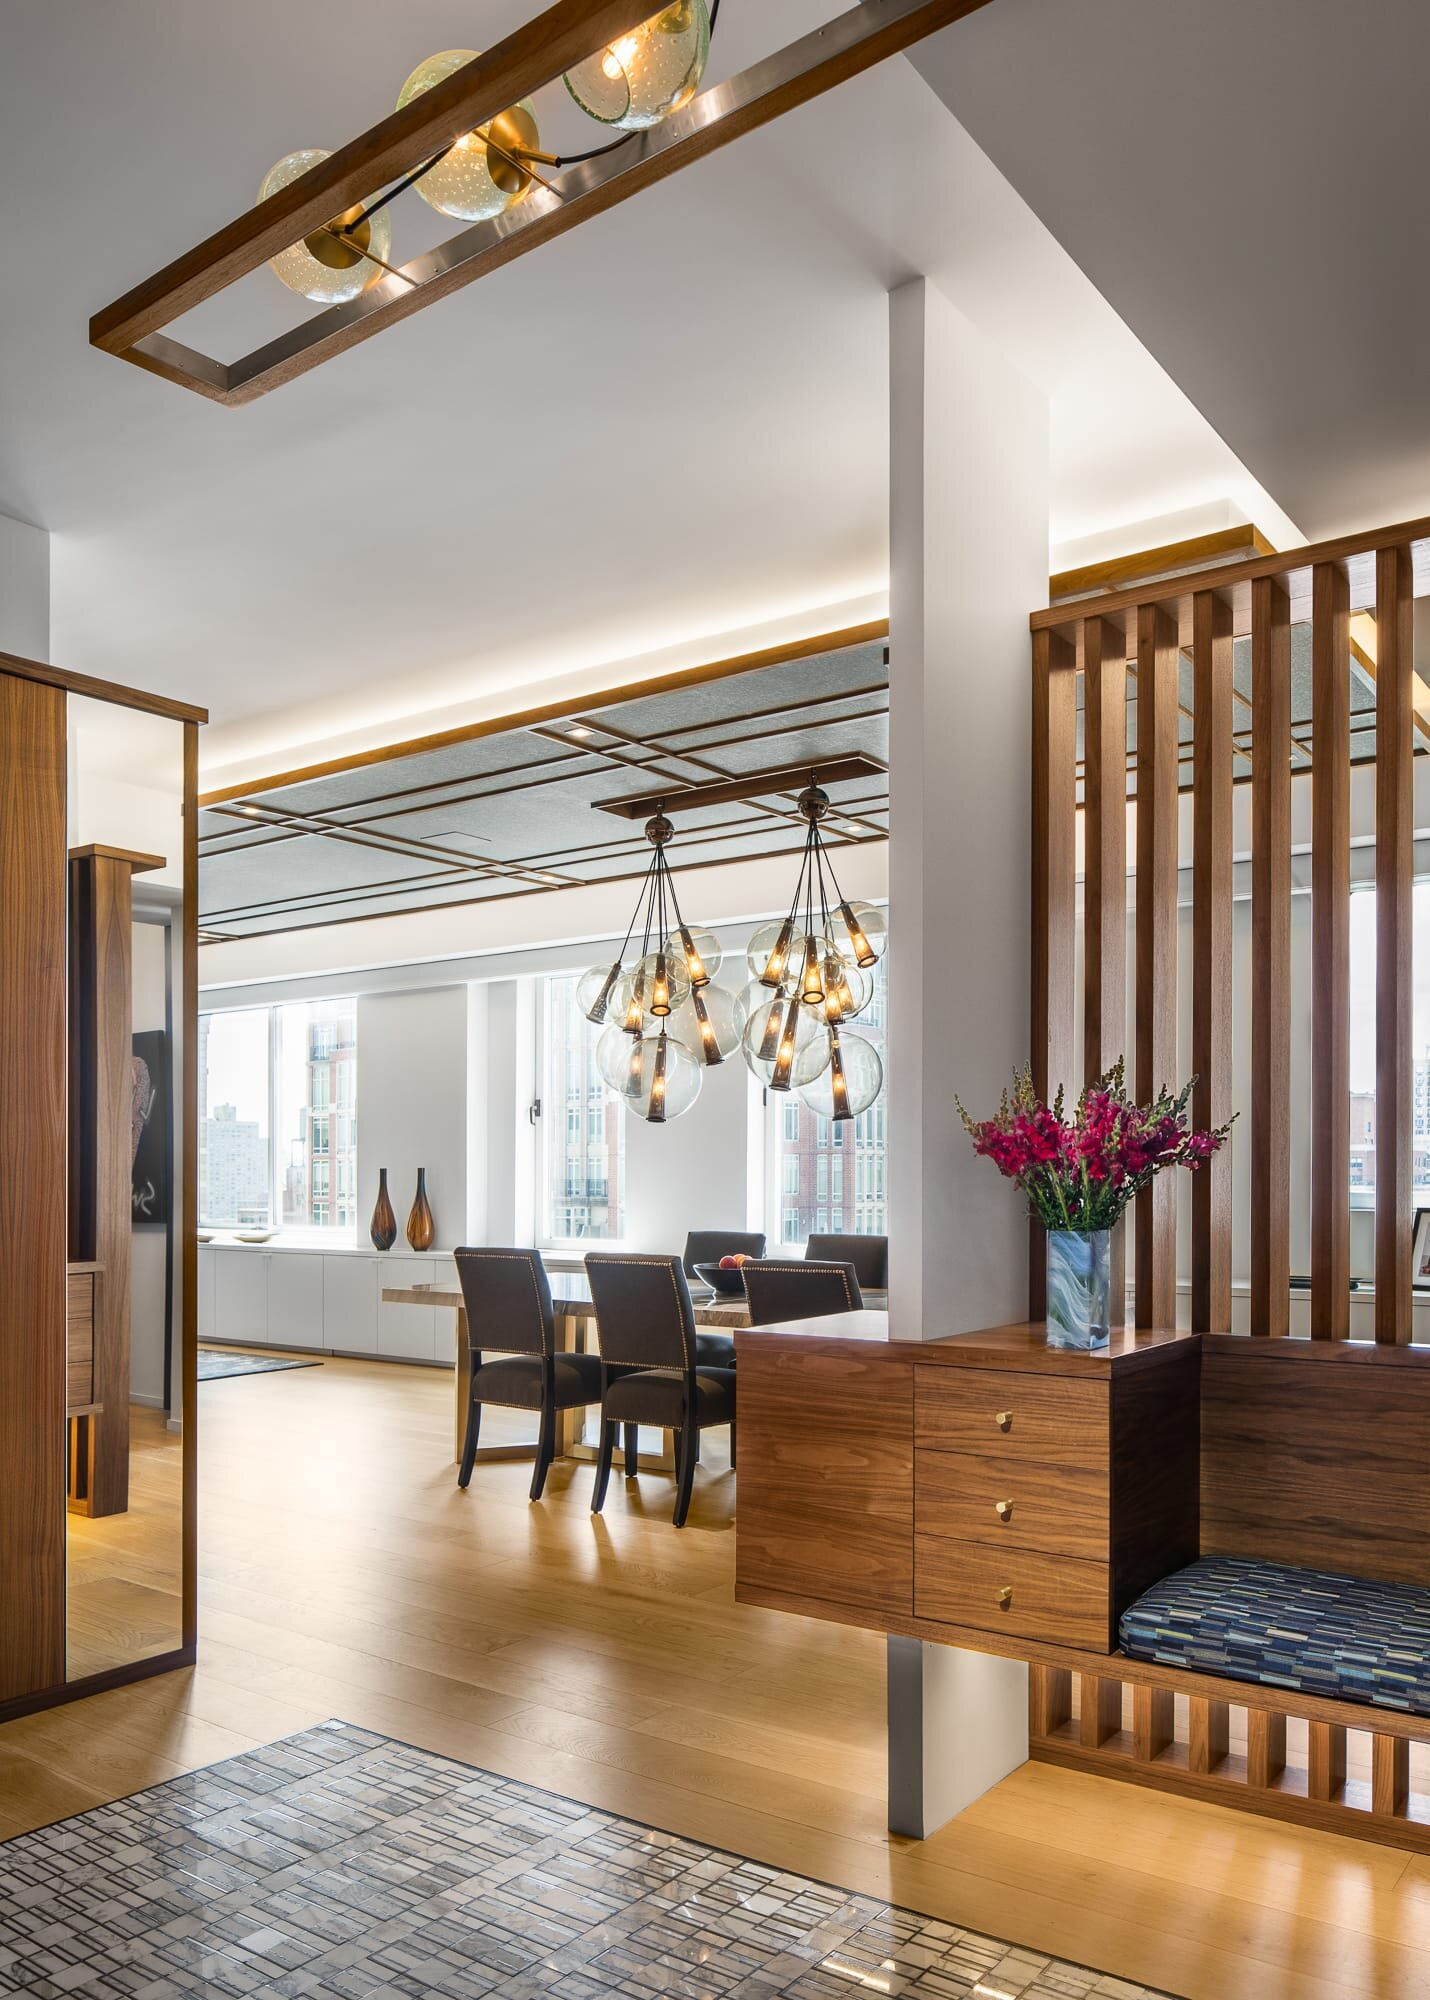 Foyer designed by Andrew Wilkinson Architect